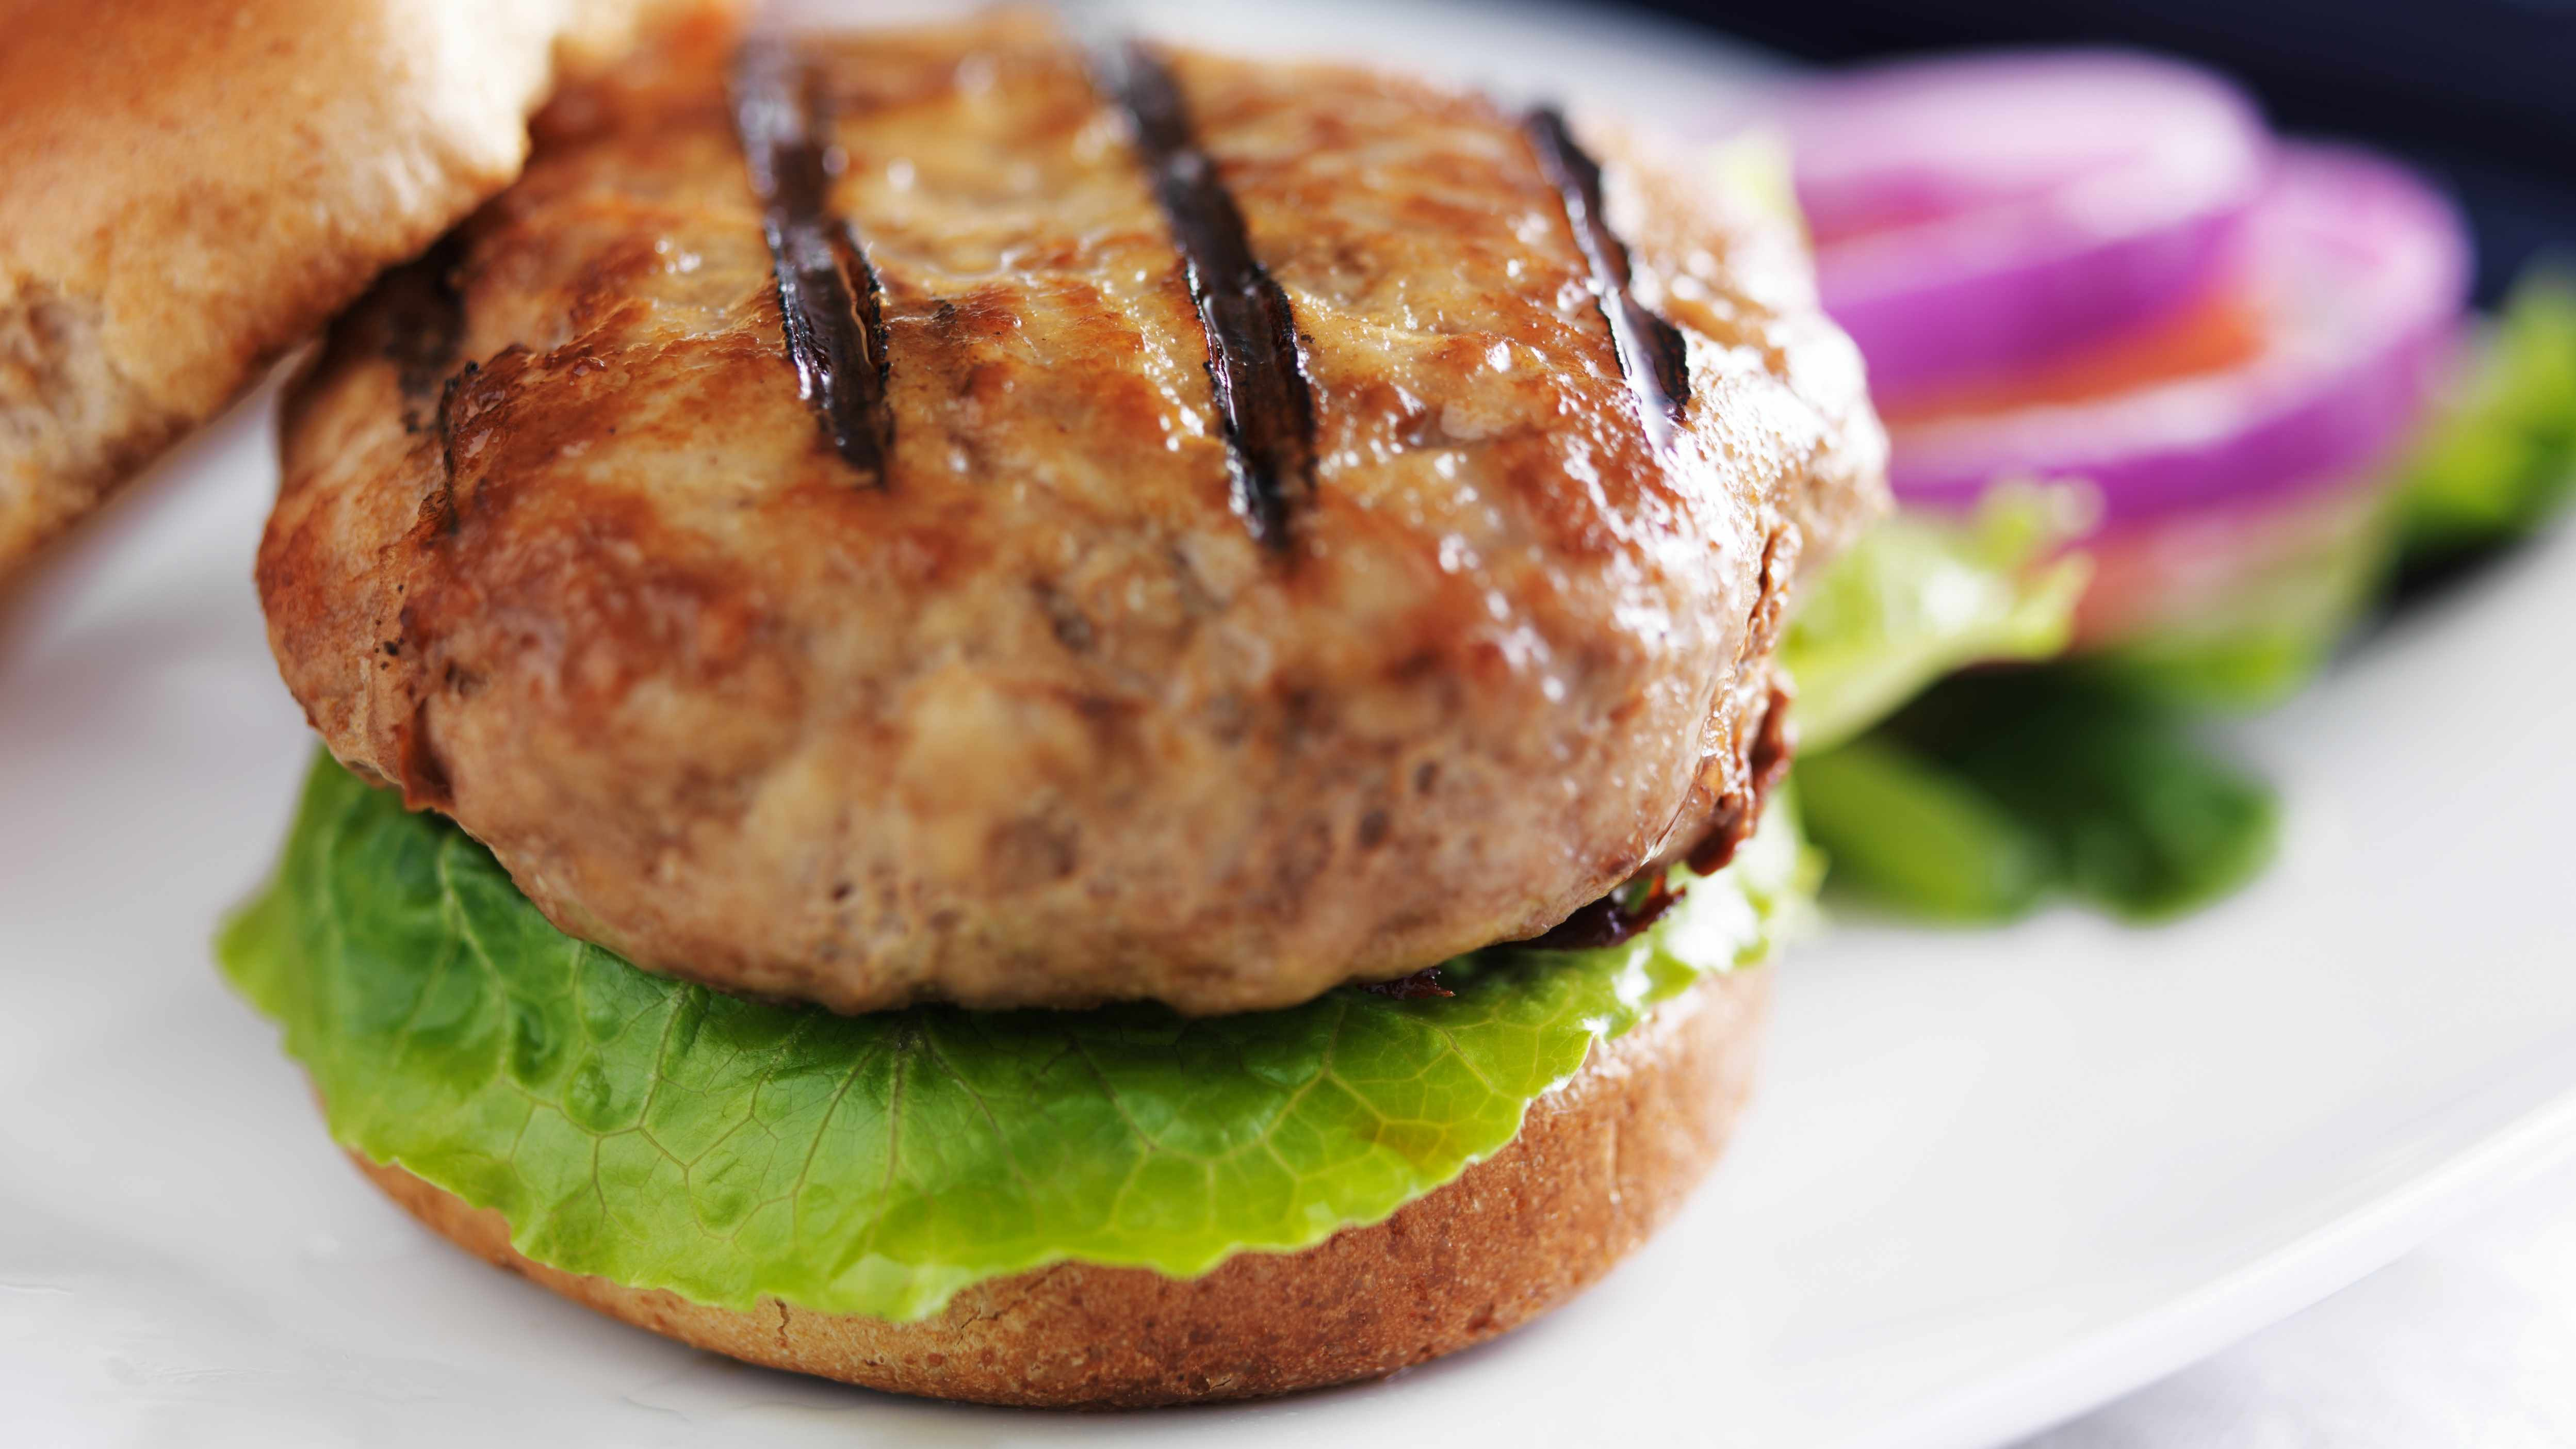 a turkey burger on a bun with lettuce and onions